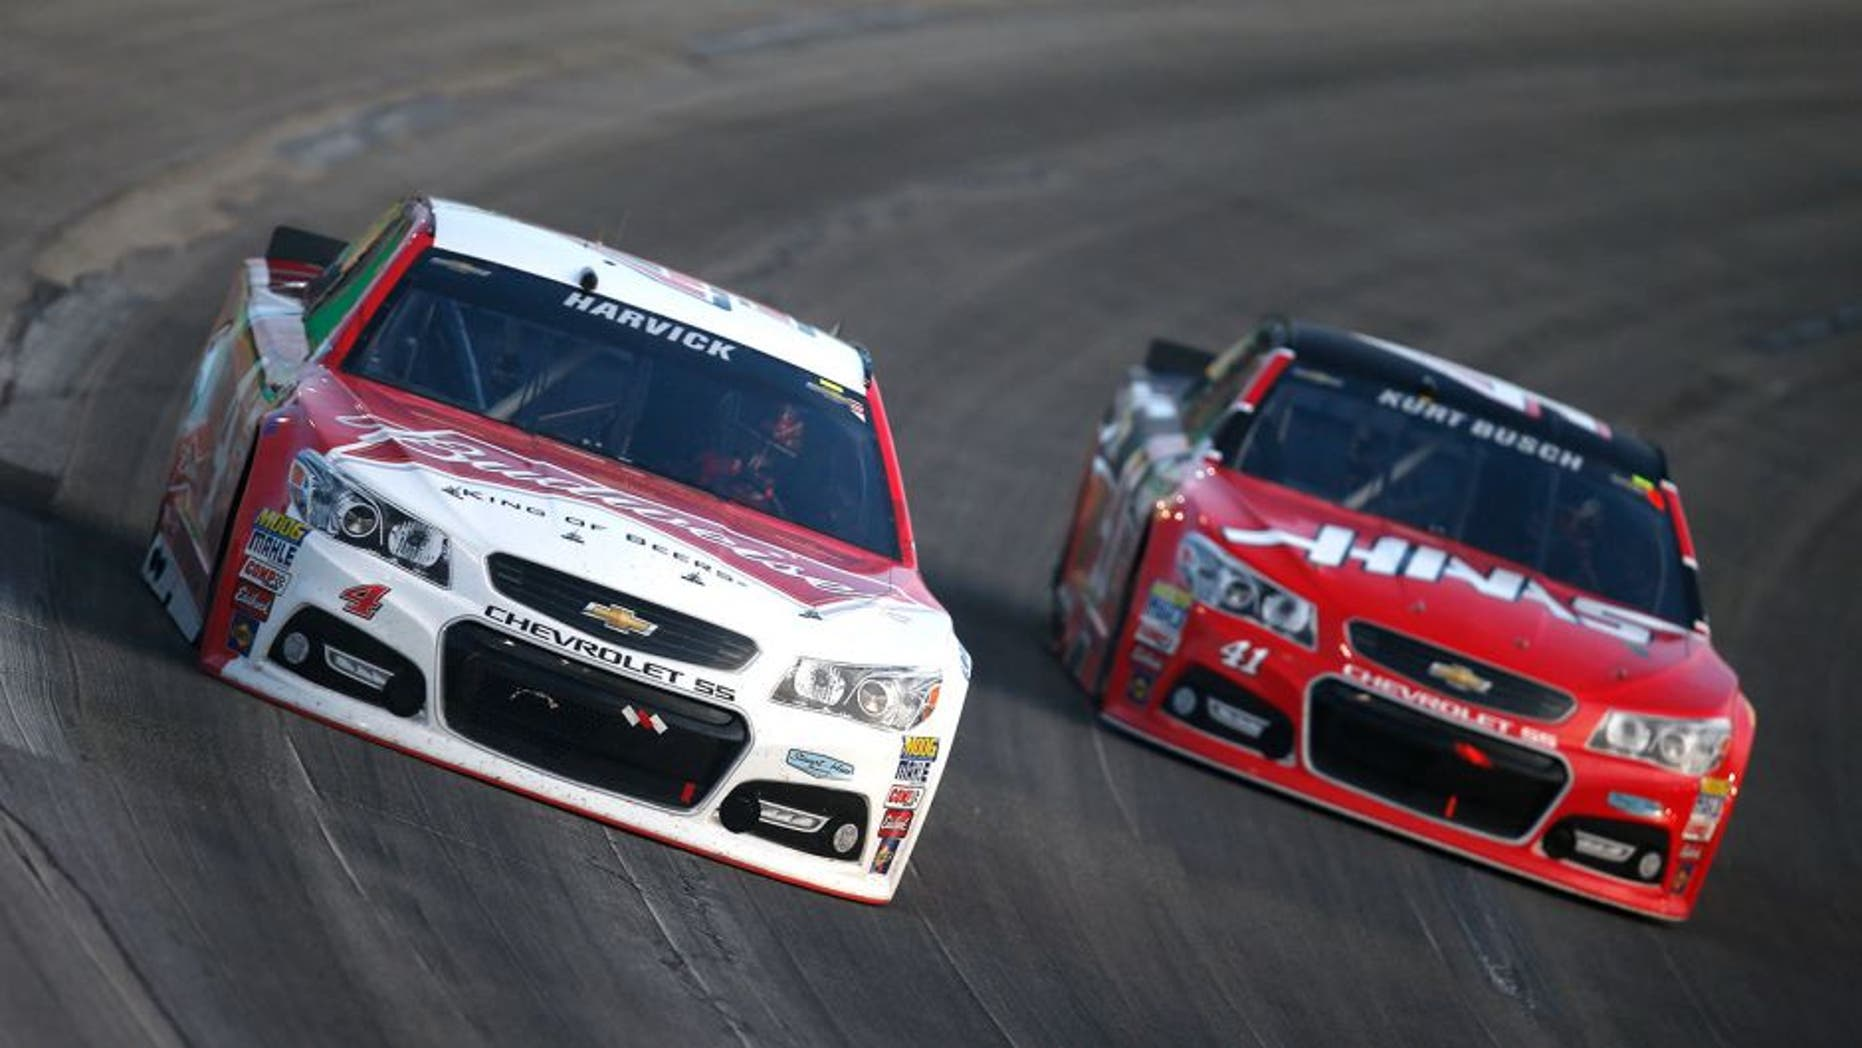 SPARTA, KY - JULY 11: Kevin Harvick, driver of the #4 Budweiser/Jimmy John's Chevrolet, and Kurt Busch, driver of the #41 Haas Automation Chevrolet, race during the NASCAR Sprint Cup Series Quaker State 400 presented by Advance Auto Parts at Kentucky Speedway on July 11, 2015 in Sparta, Kentucky. (Photo by Todd Warshaw/Getty Images)